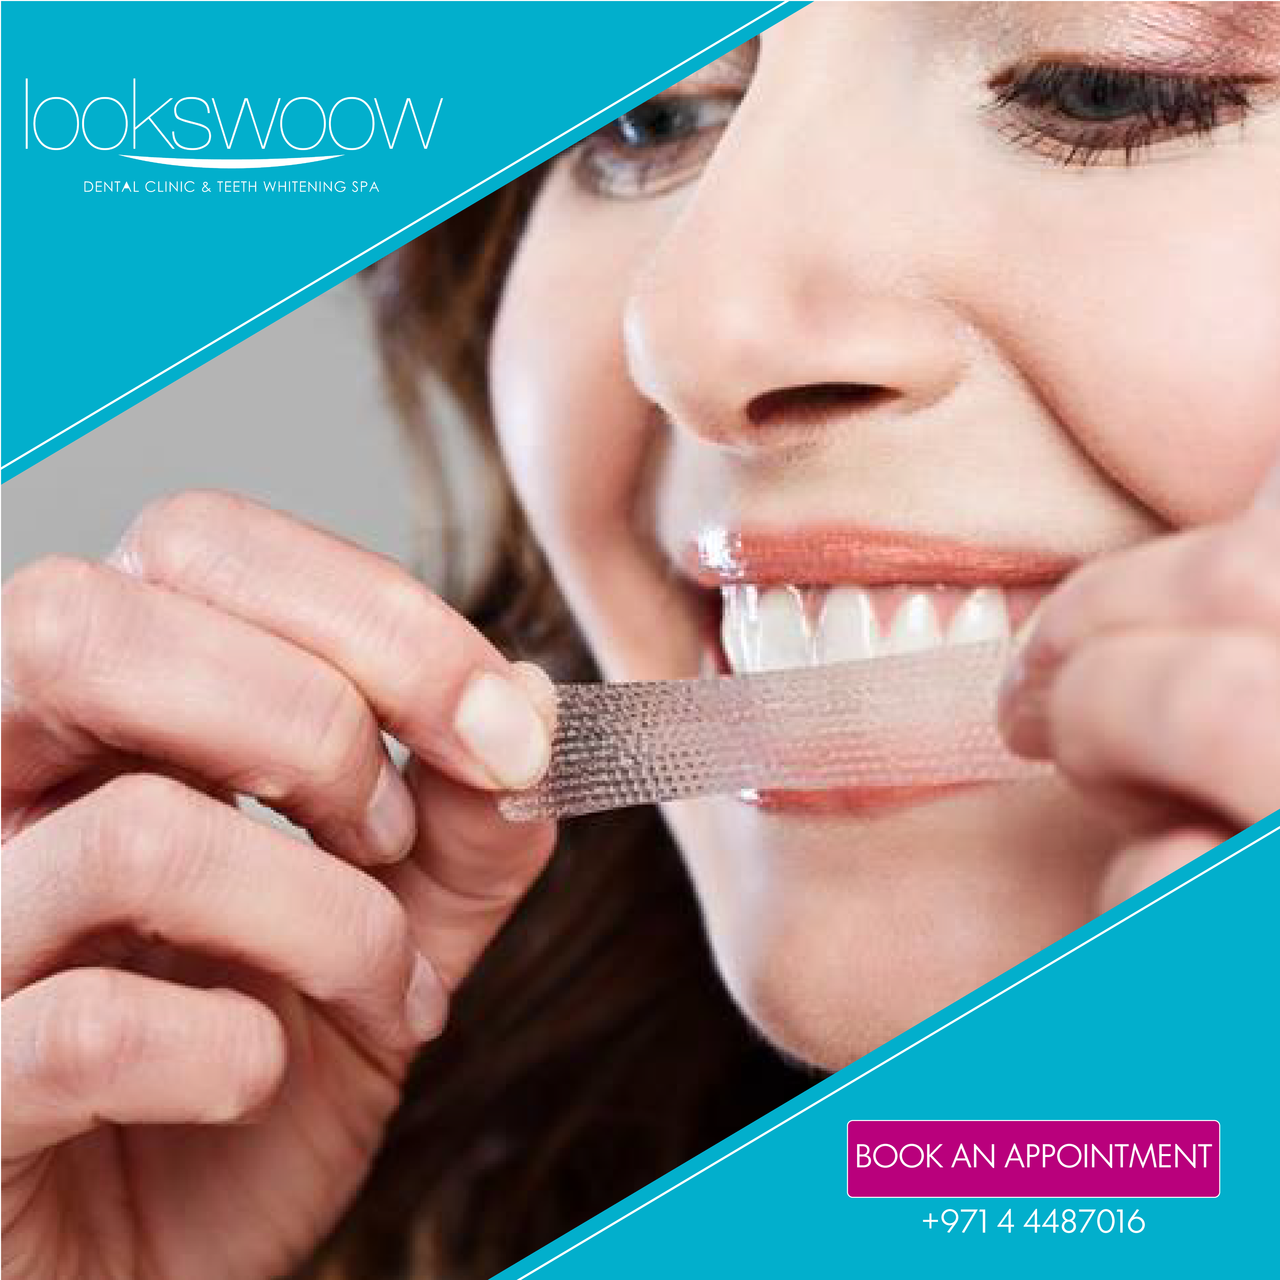 Over the counter teeth whitening products can actually be very over the counter teeth whitening products can actually be very harmful if you use solutioingenieria Image collections